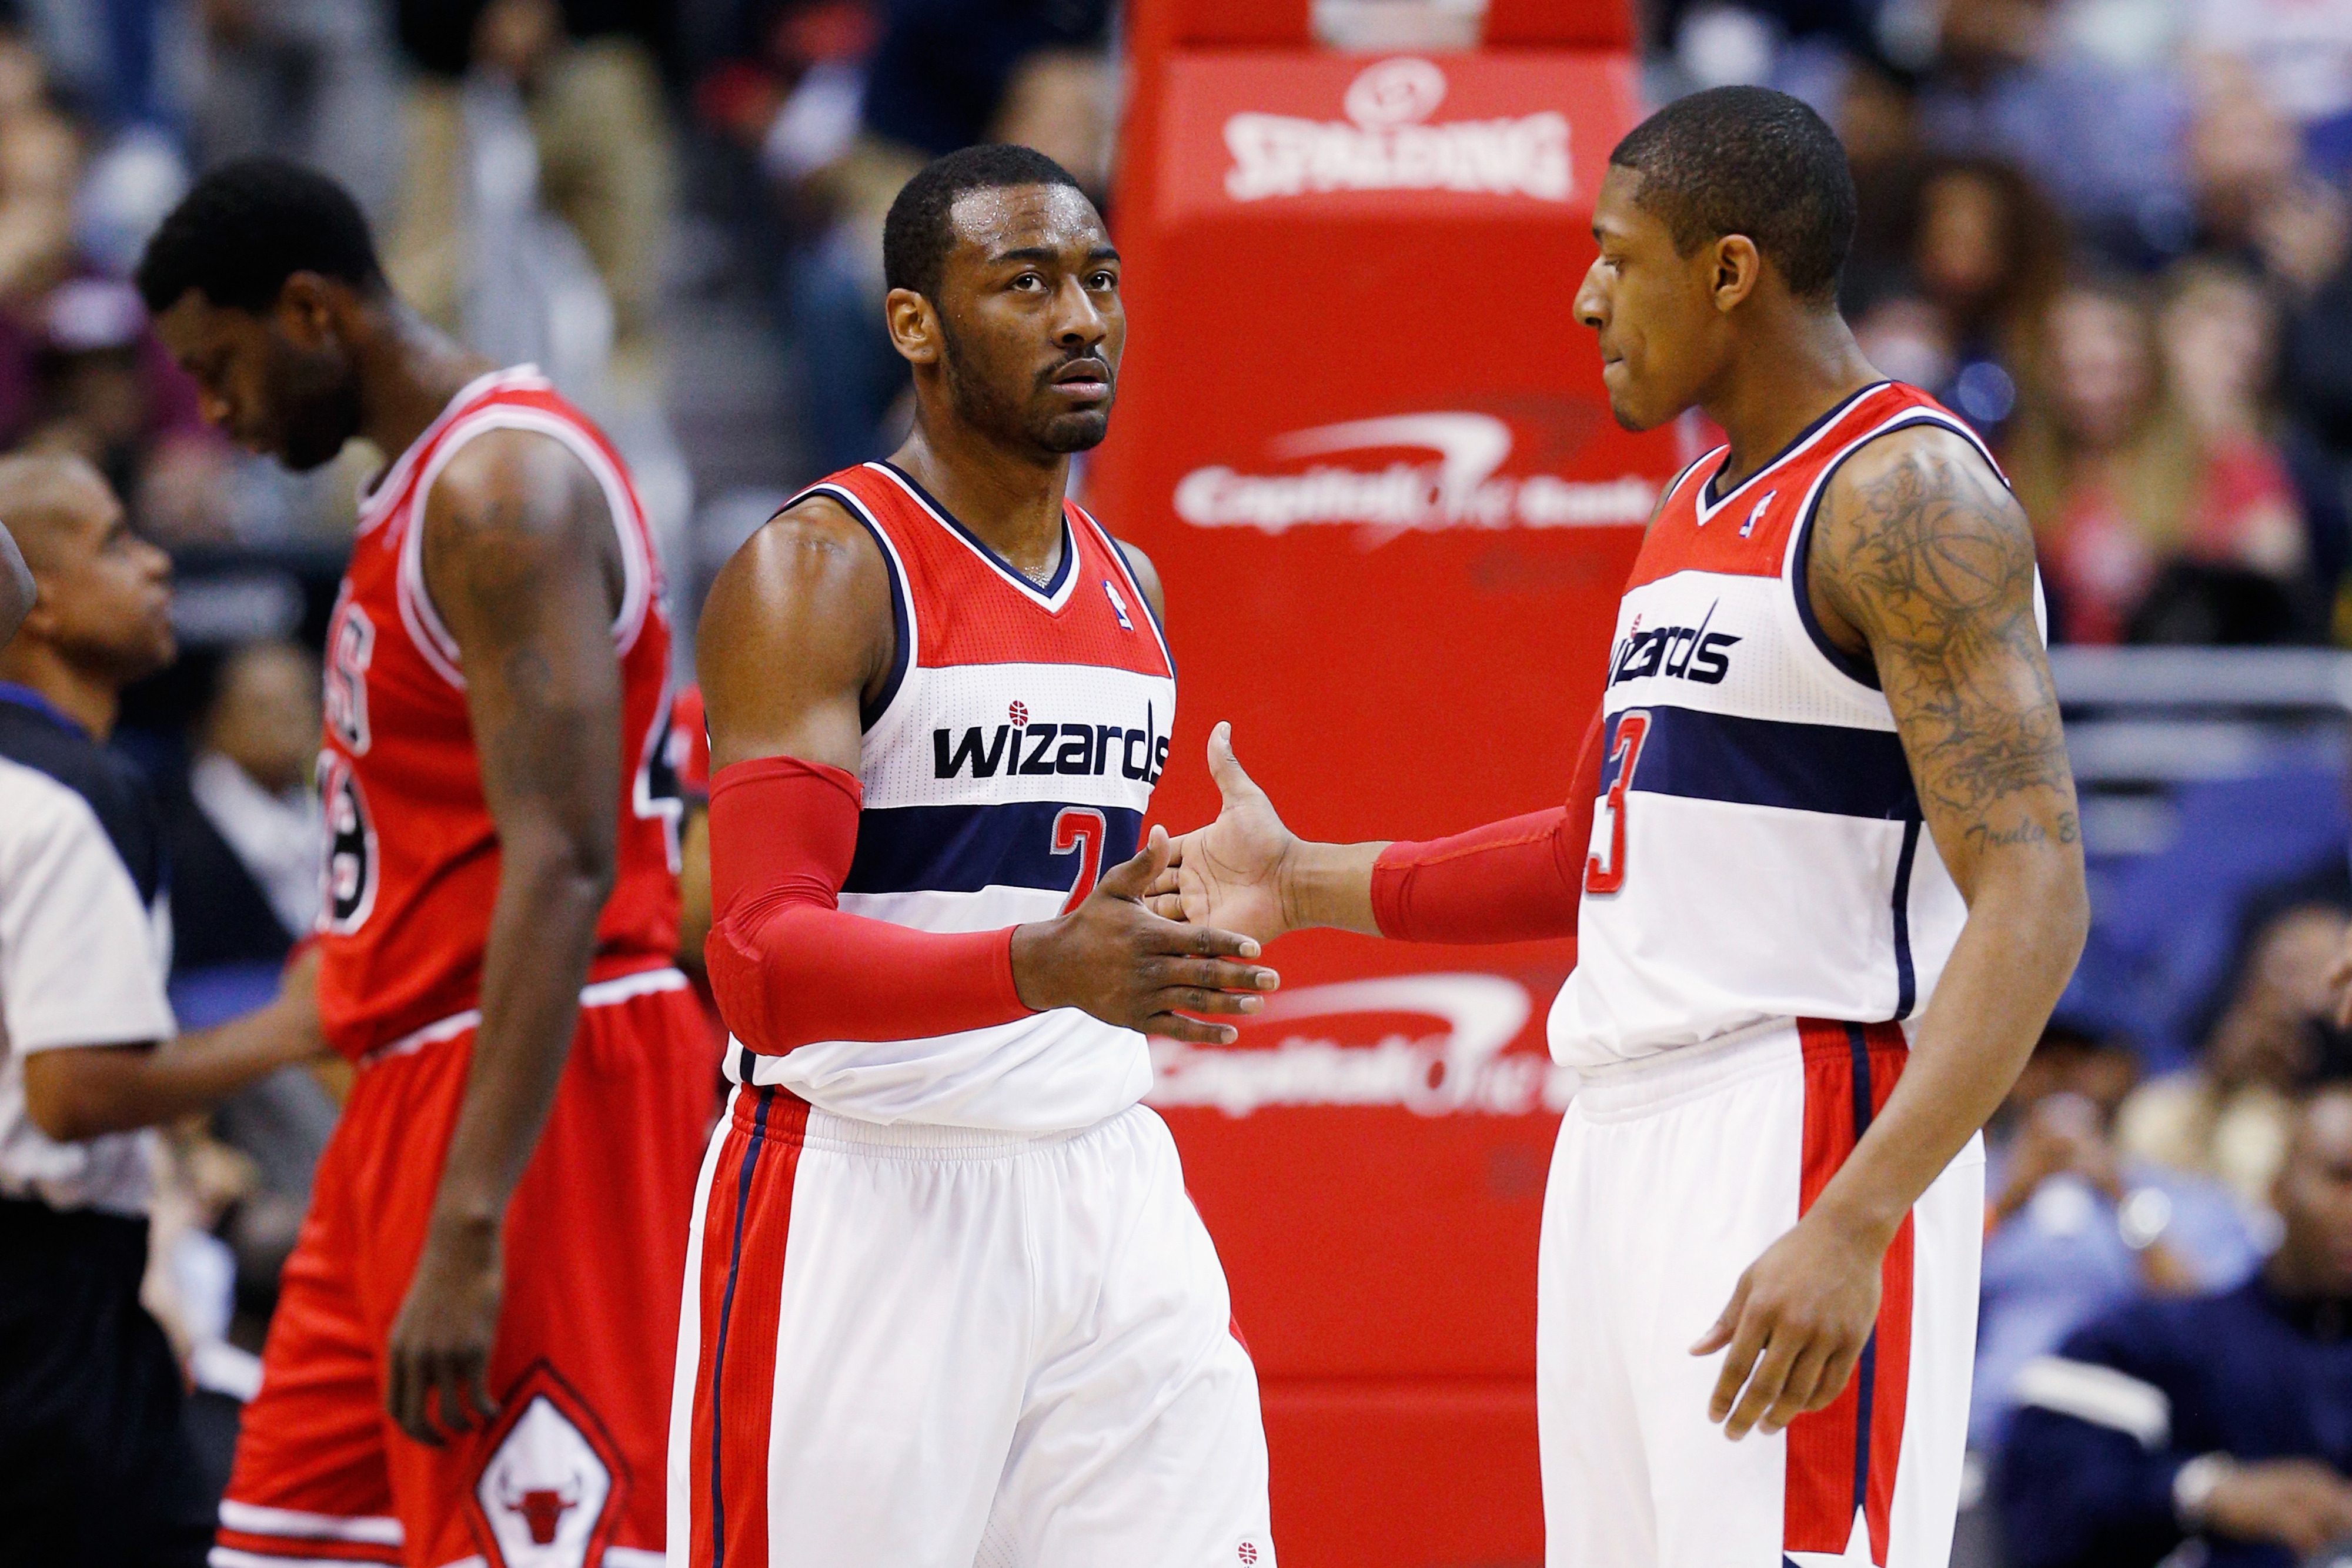 John Wall and Bradley Beal (left and right) are two Wizards first round picks who are developing well and figure to be in DC for a long time.  The Mystics need to do the same starting with Tayler Hill (not pictured).